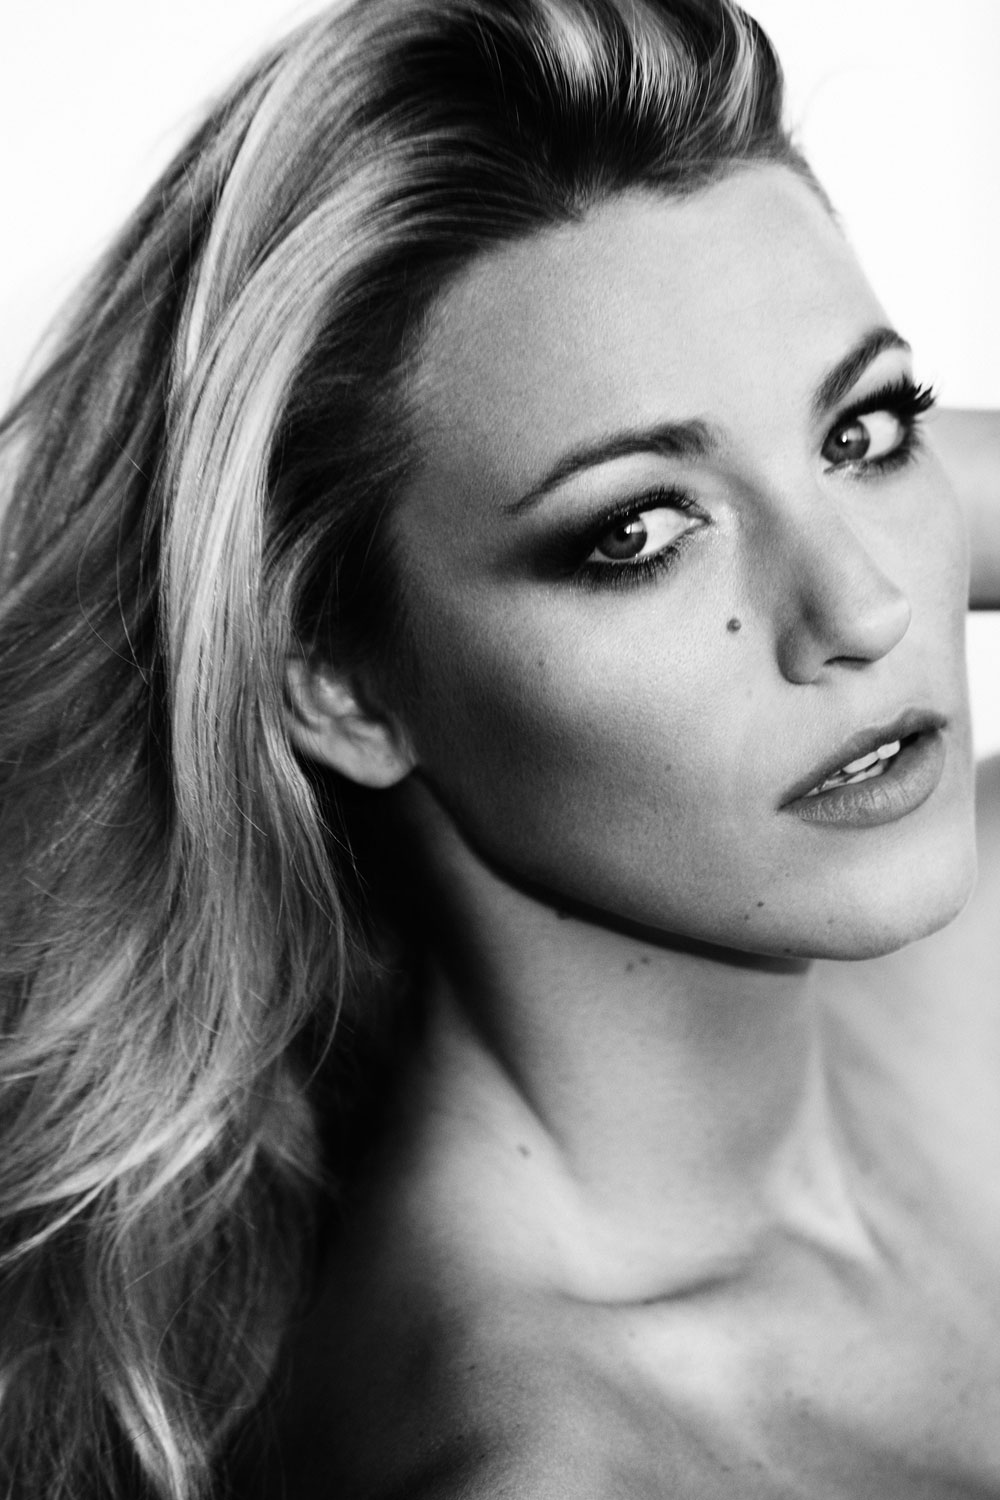 Blake Lively For L'Oreal: The Campaign We've All Been Waiting For